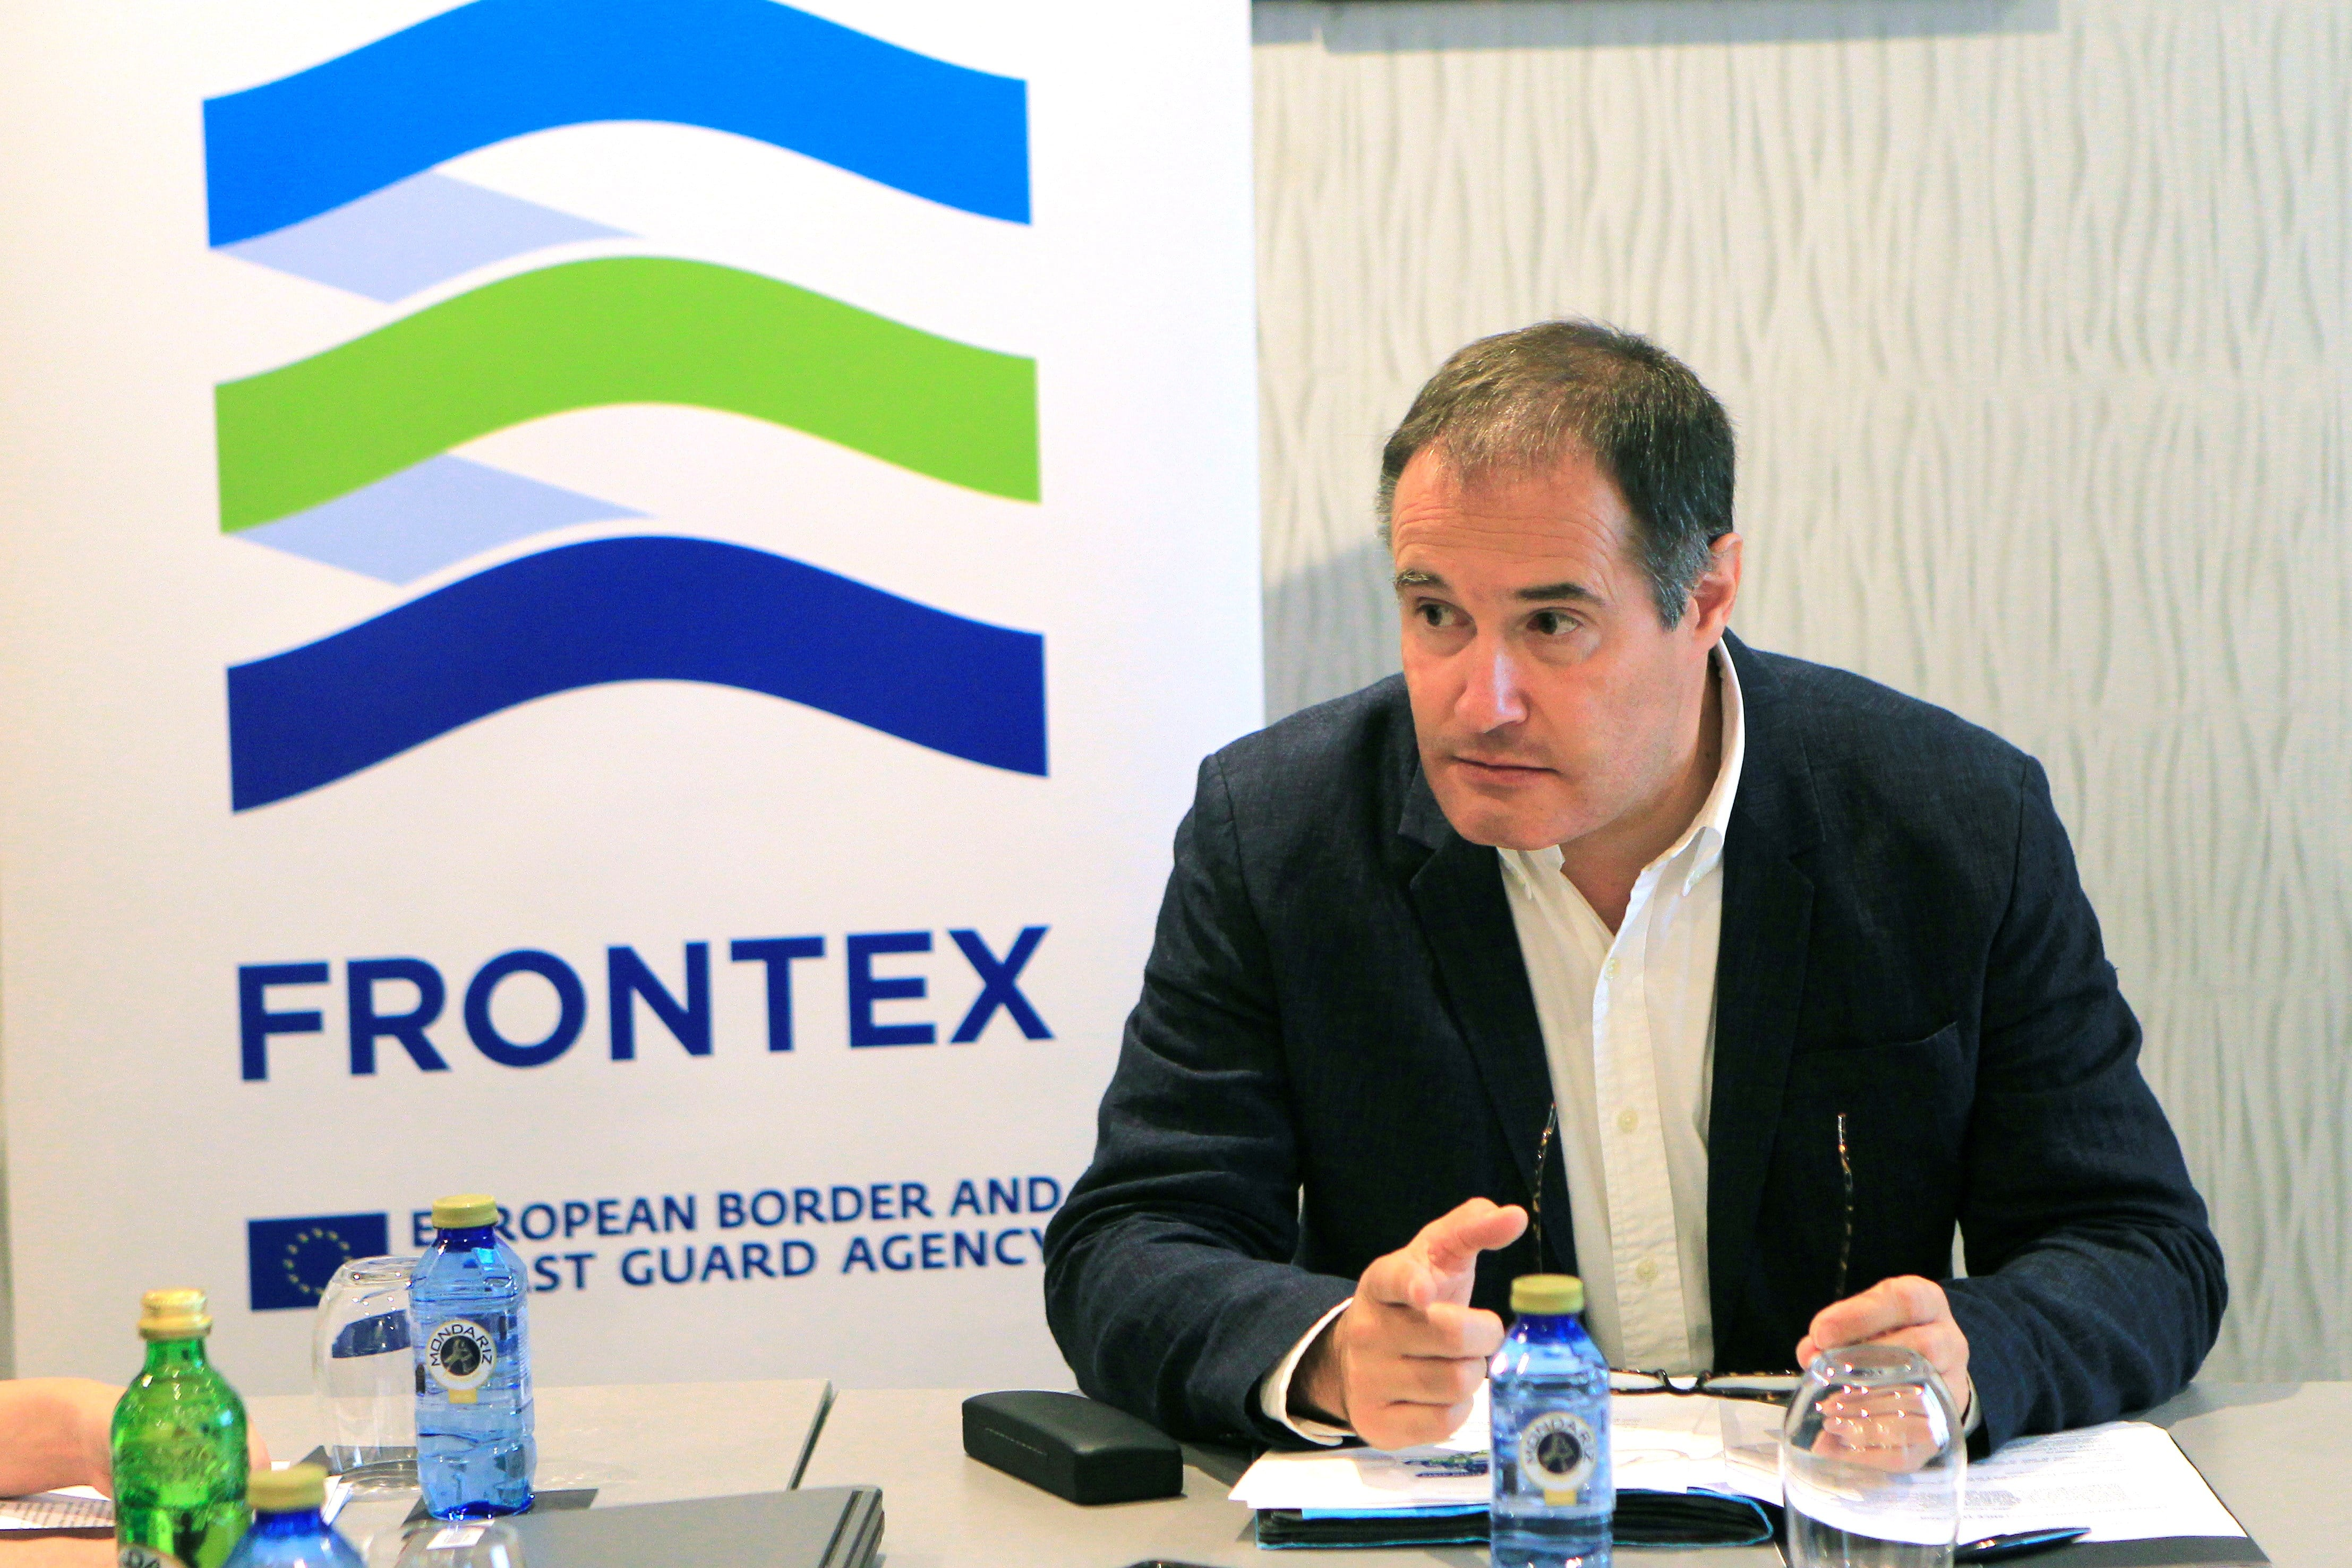 Frontex strengthened mandate comes into force